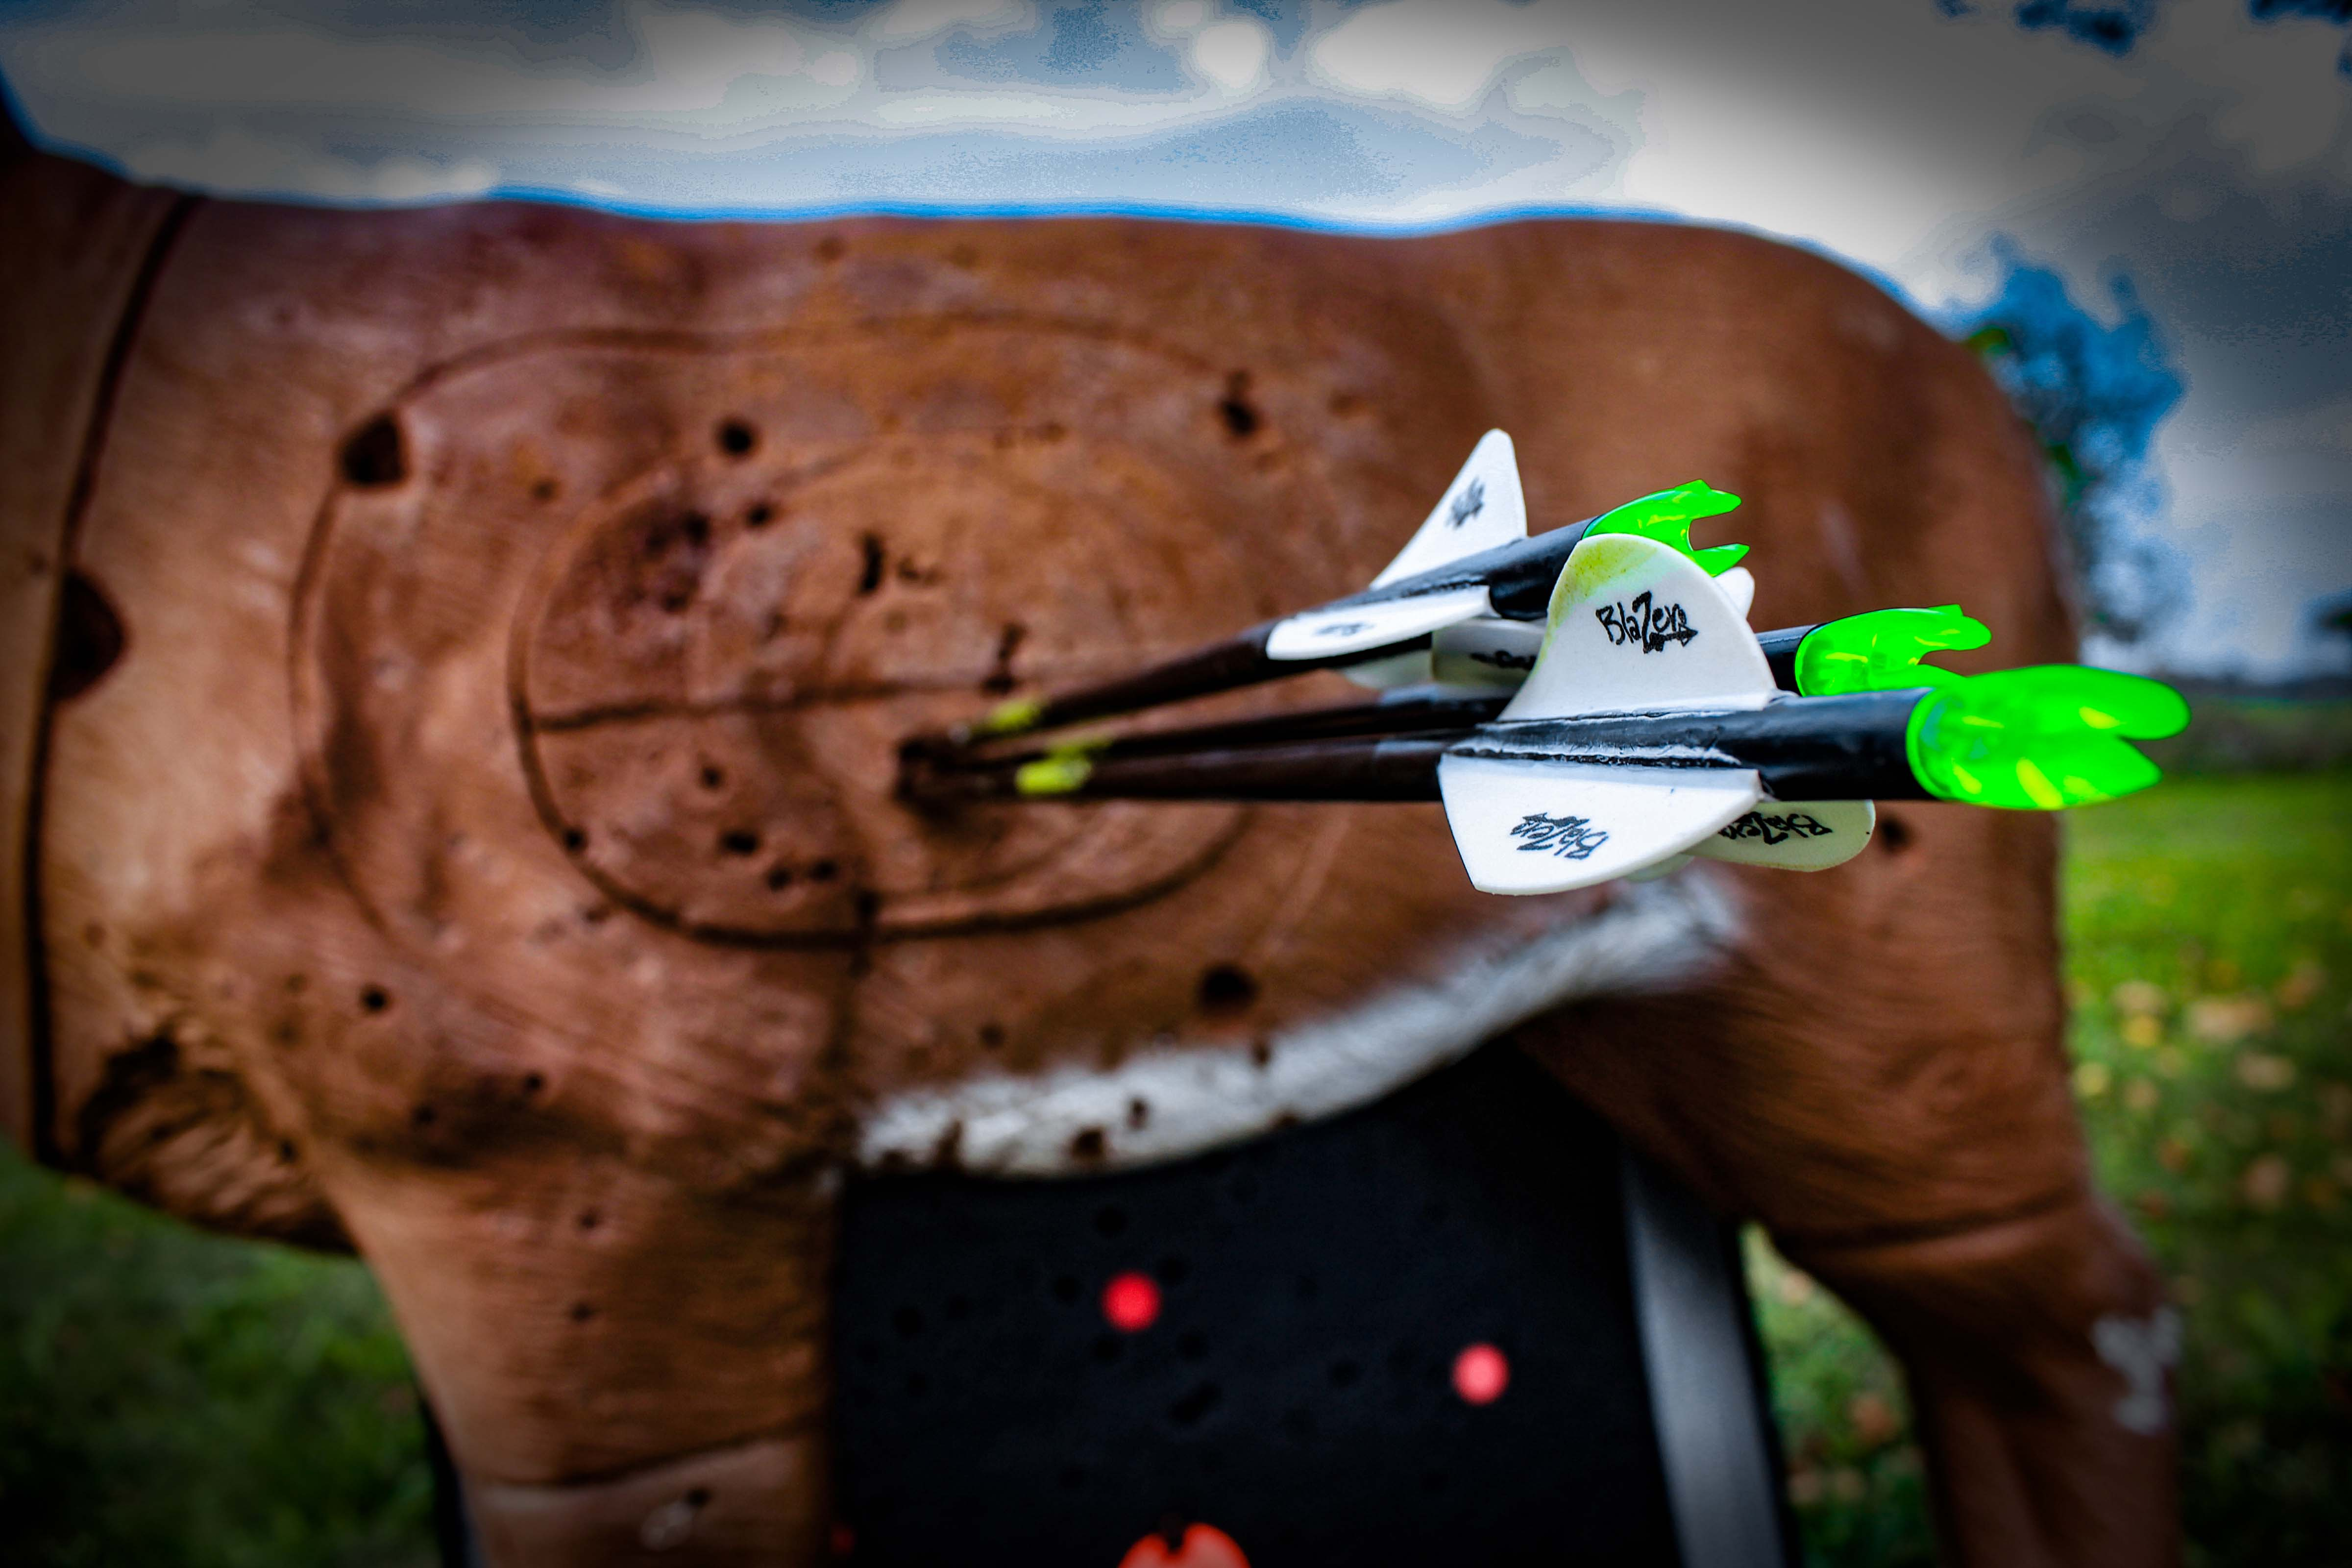 To ensure you can visualize proper shot angles, practice often with a 3-D target. Photo Credit: Tyler Ridenour